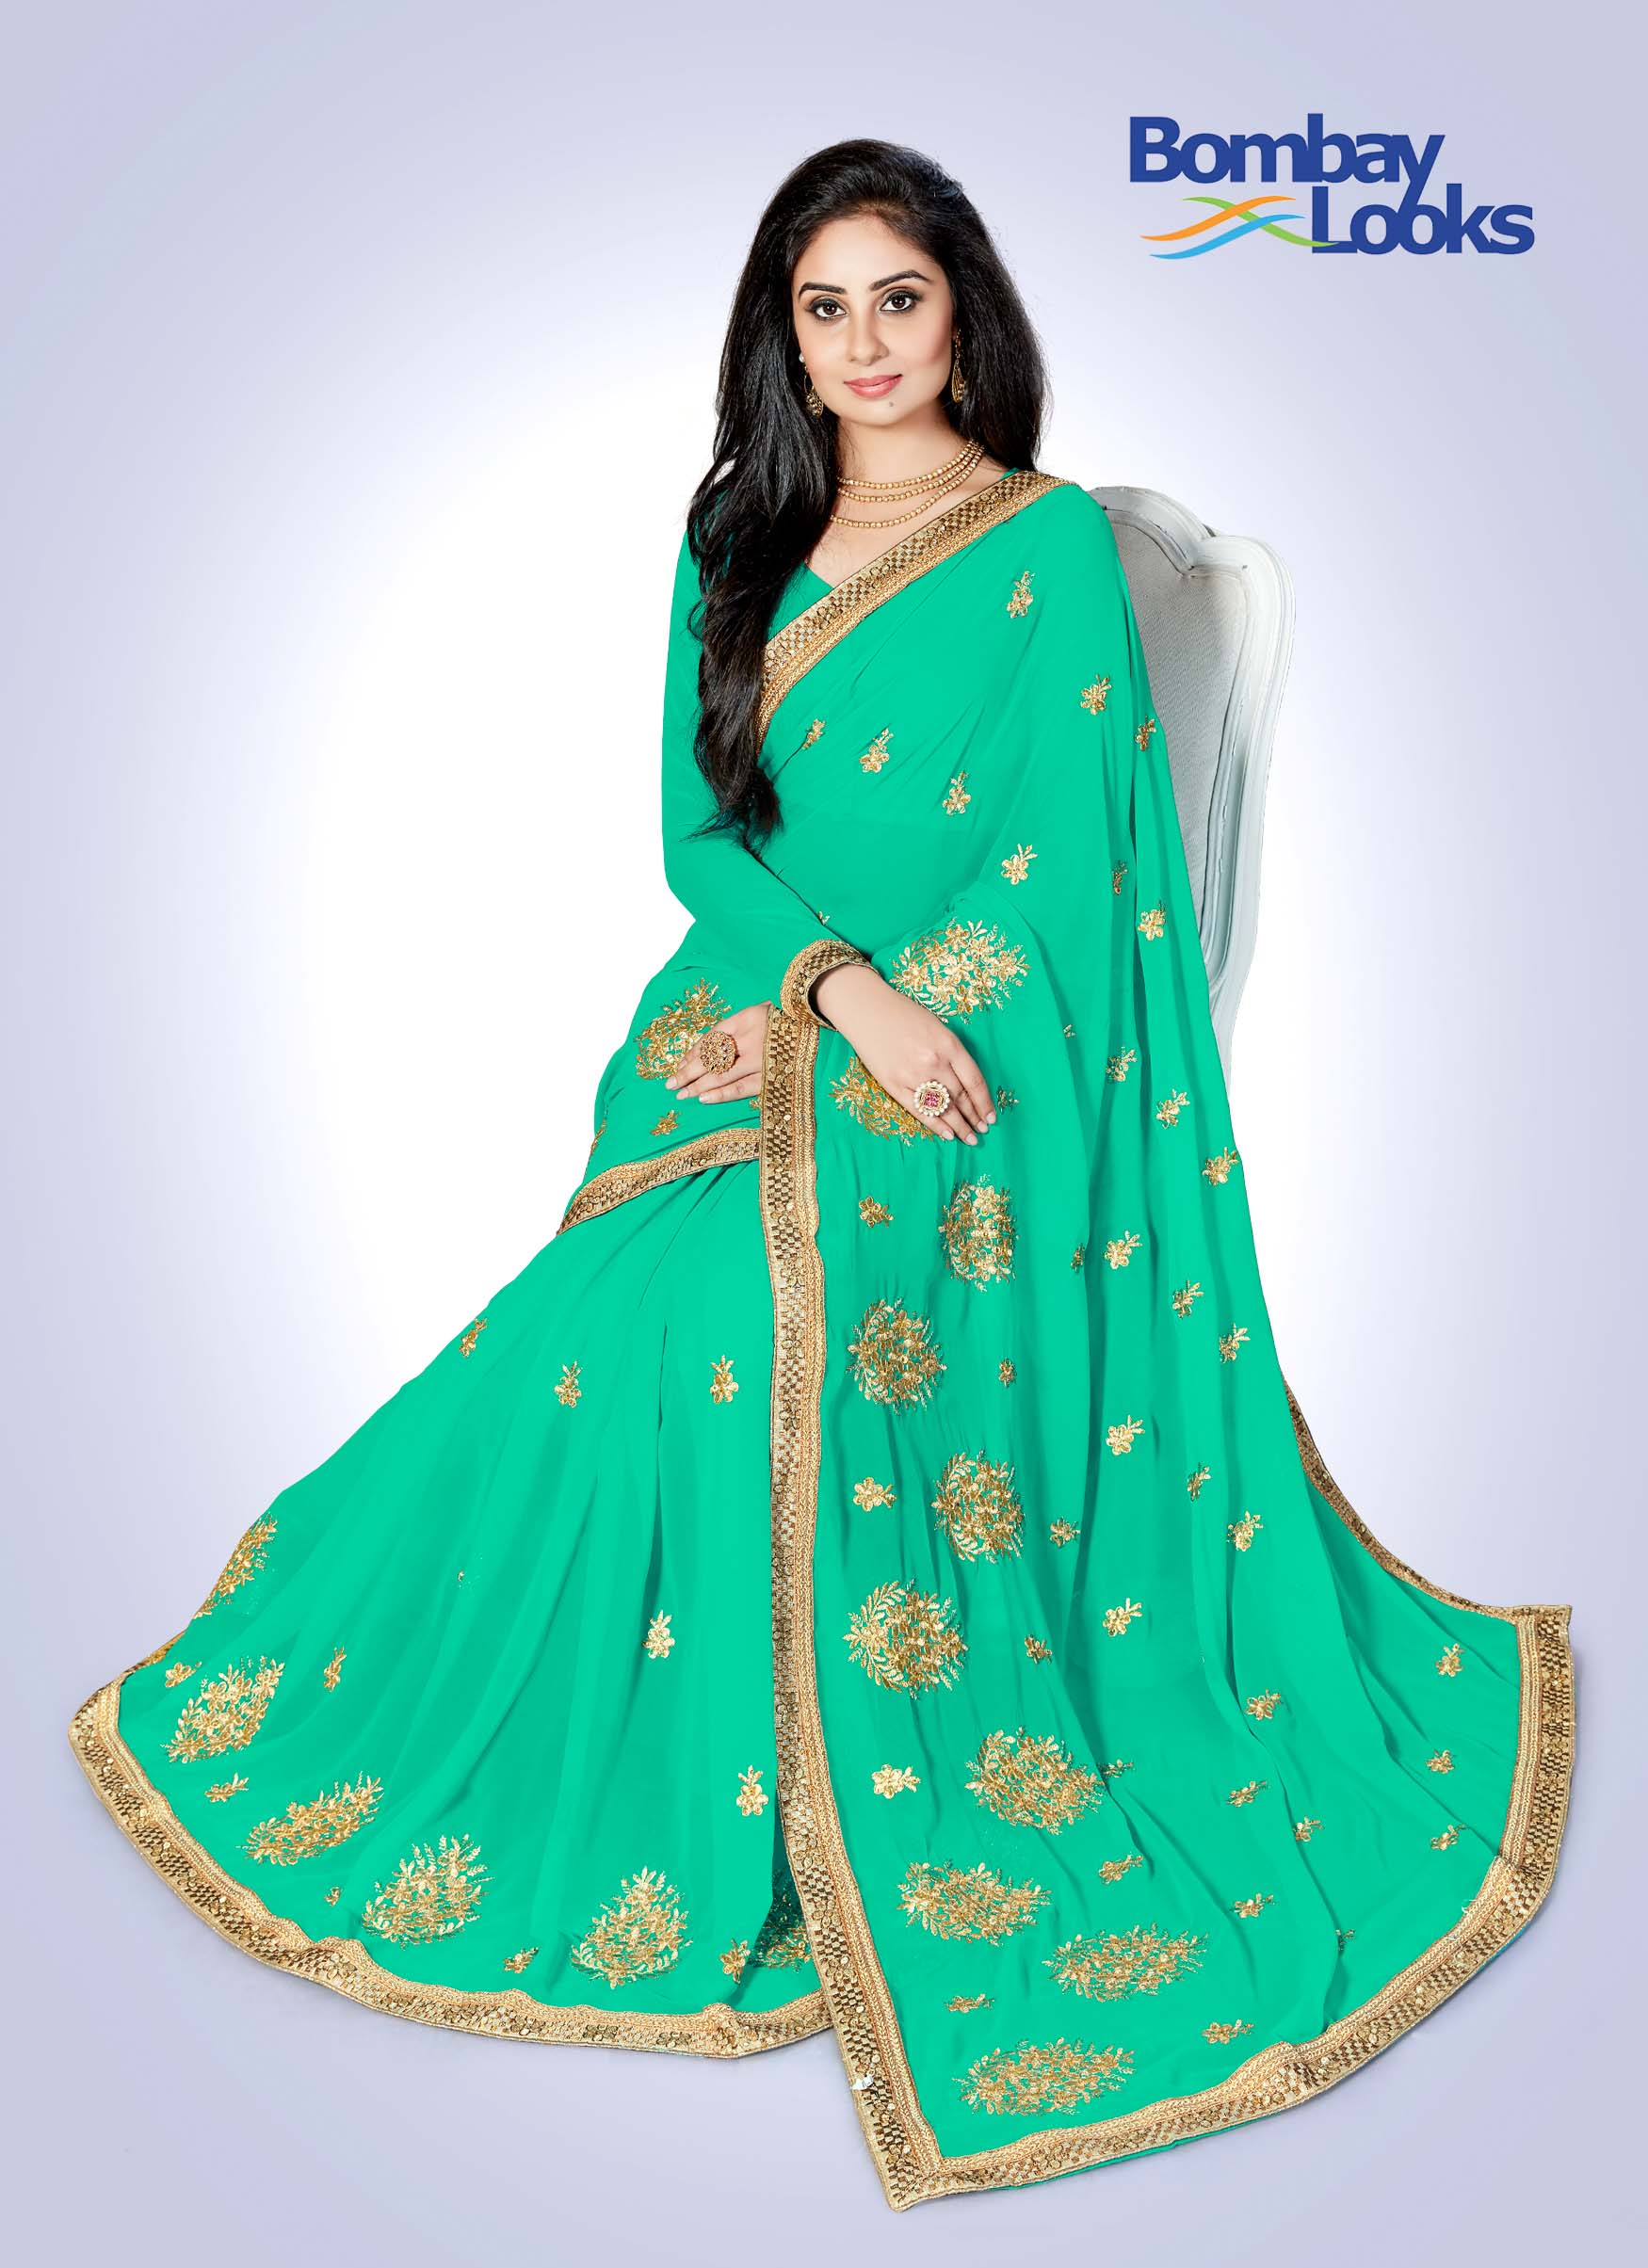 Green georgette saree with gold embroidery